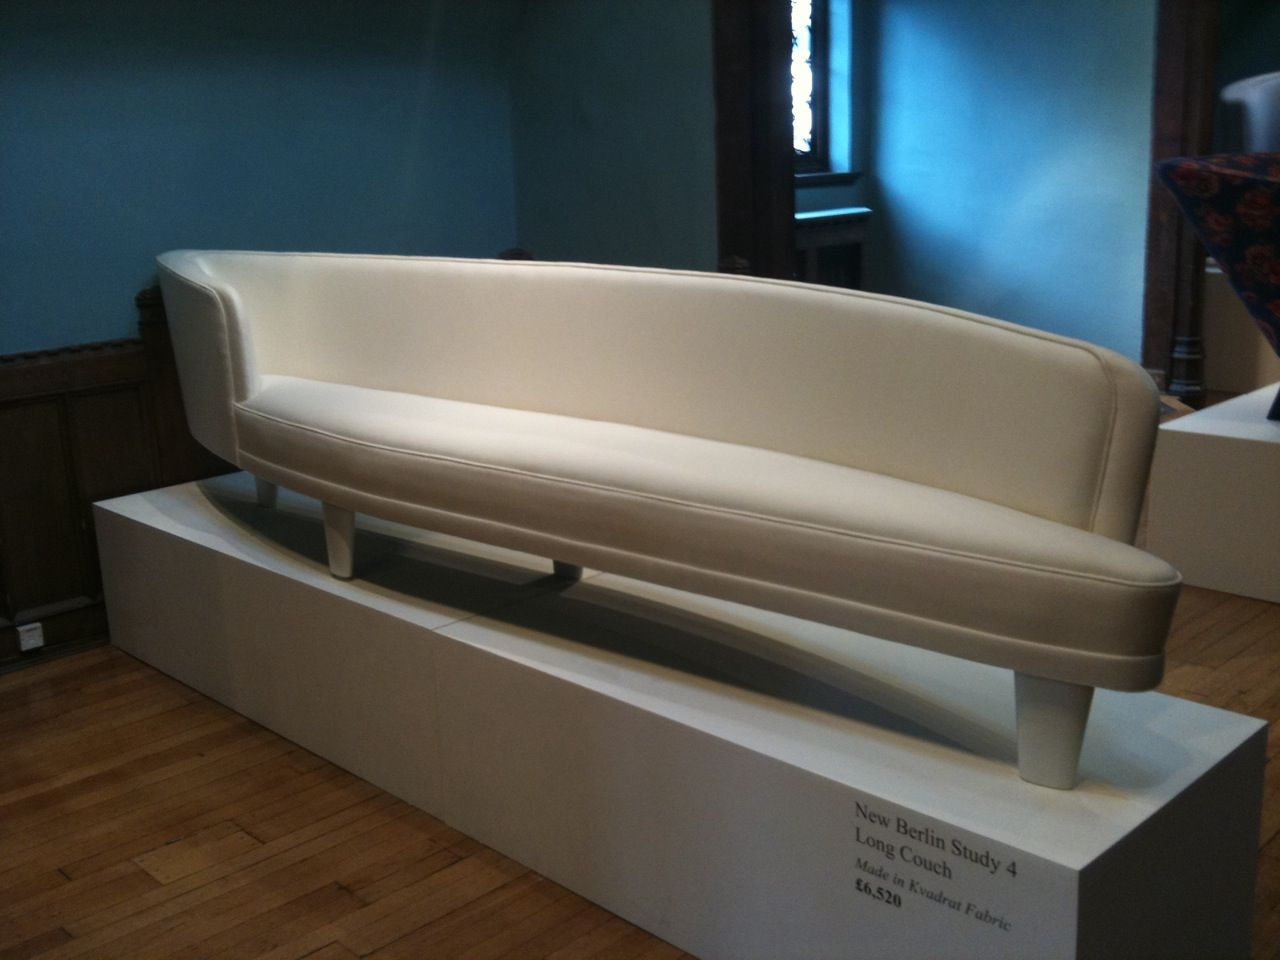 The Long Couch By Acne Is Another Part Of The New Berlin Study. The  Collection Idea